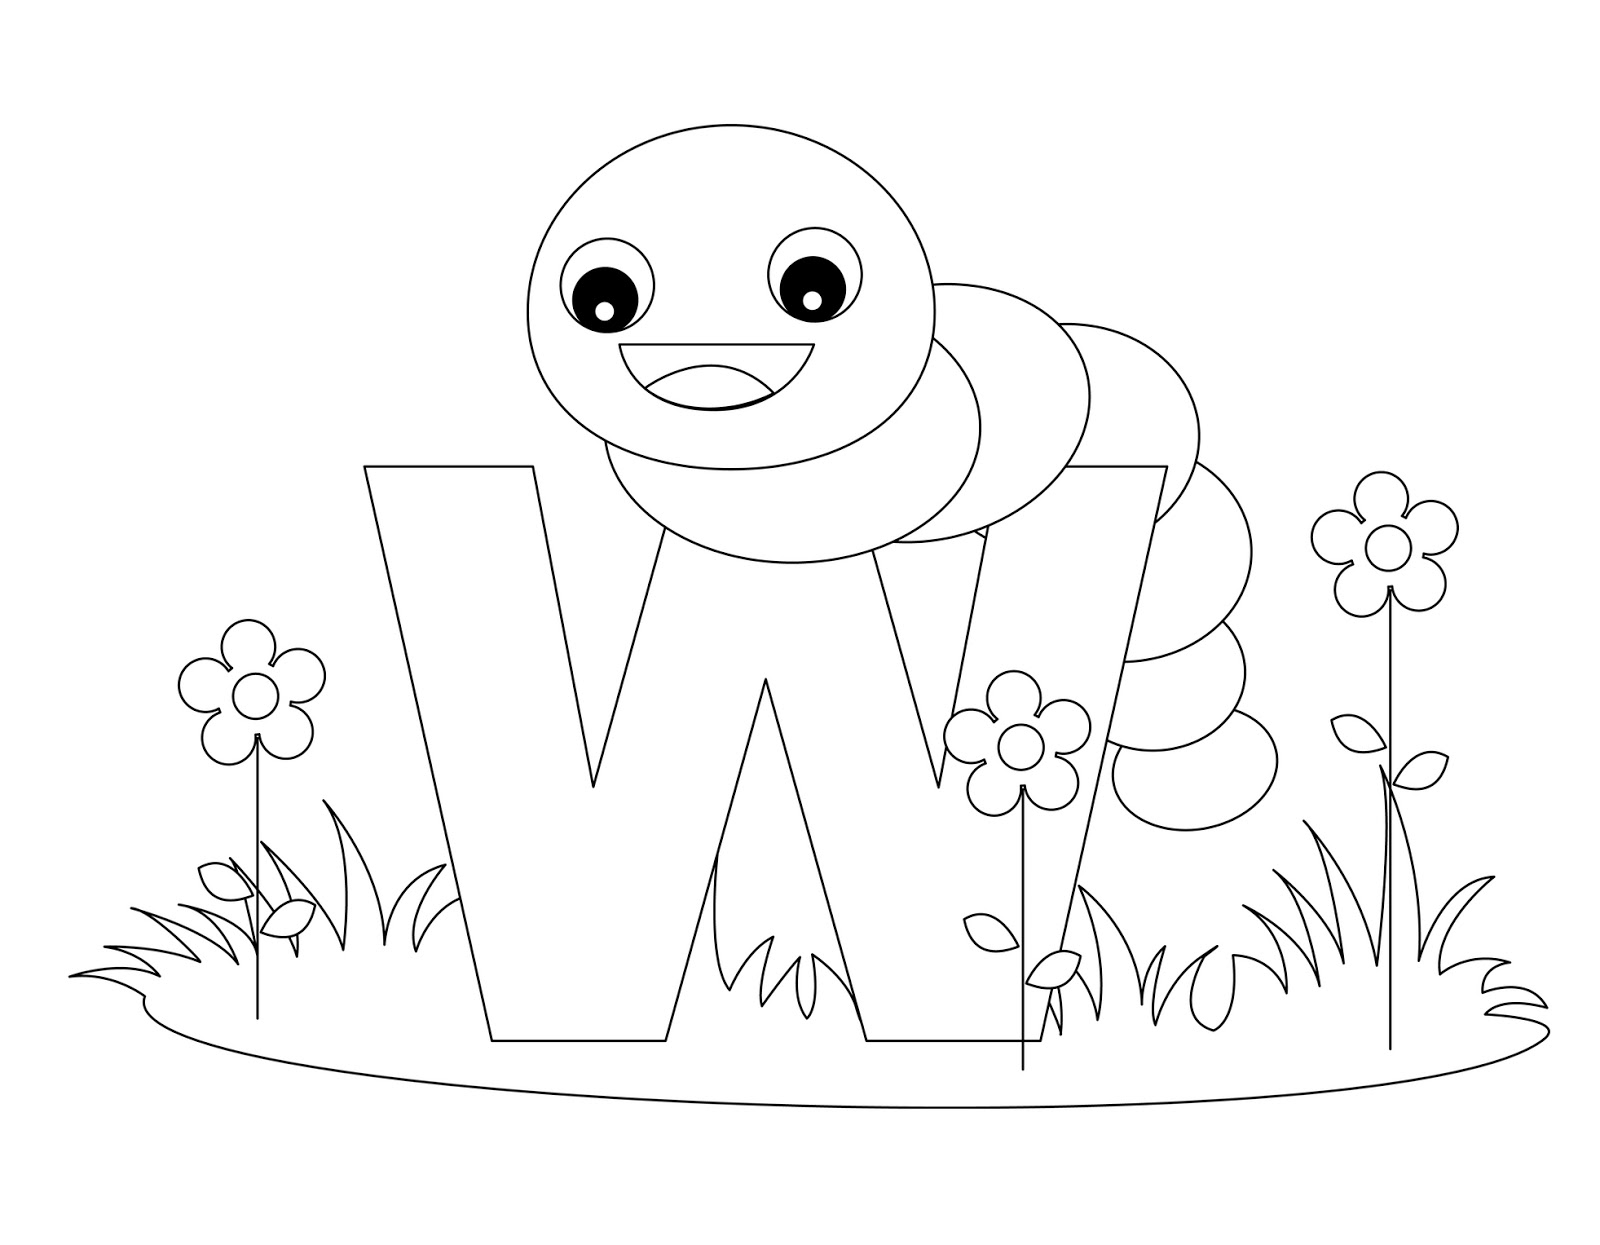 letter a coloring page free printable alphabet coloring pages for kids best coloring page letter a